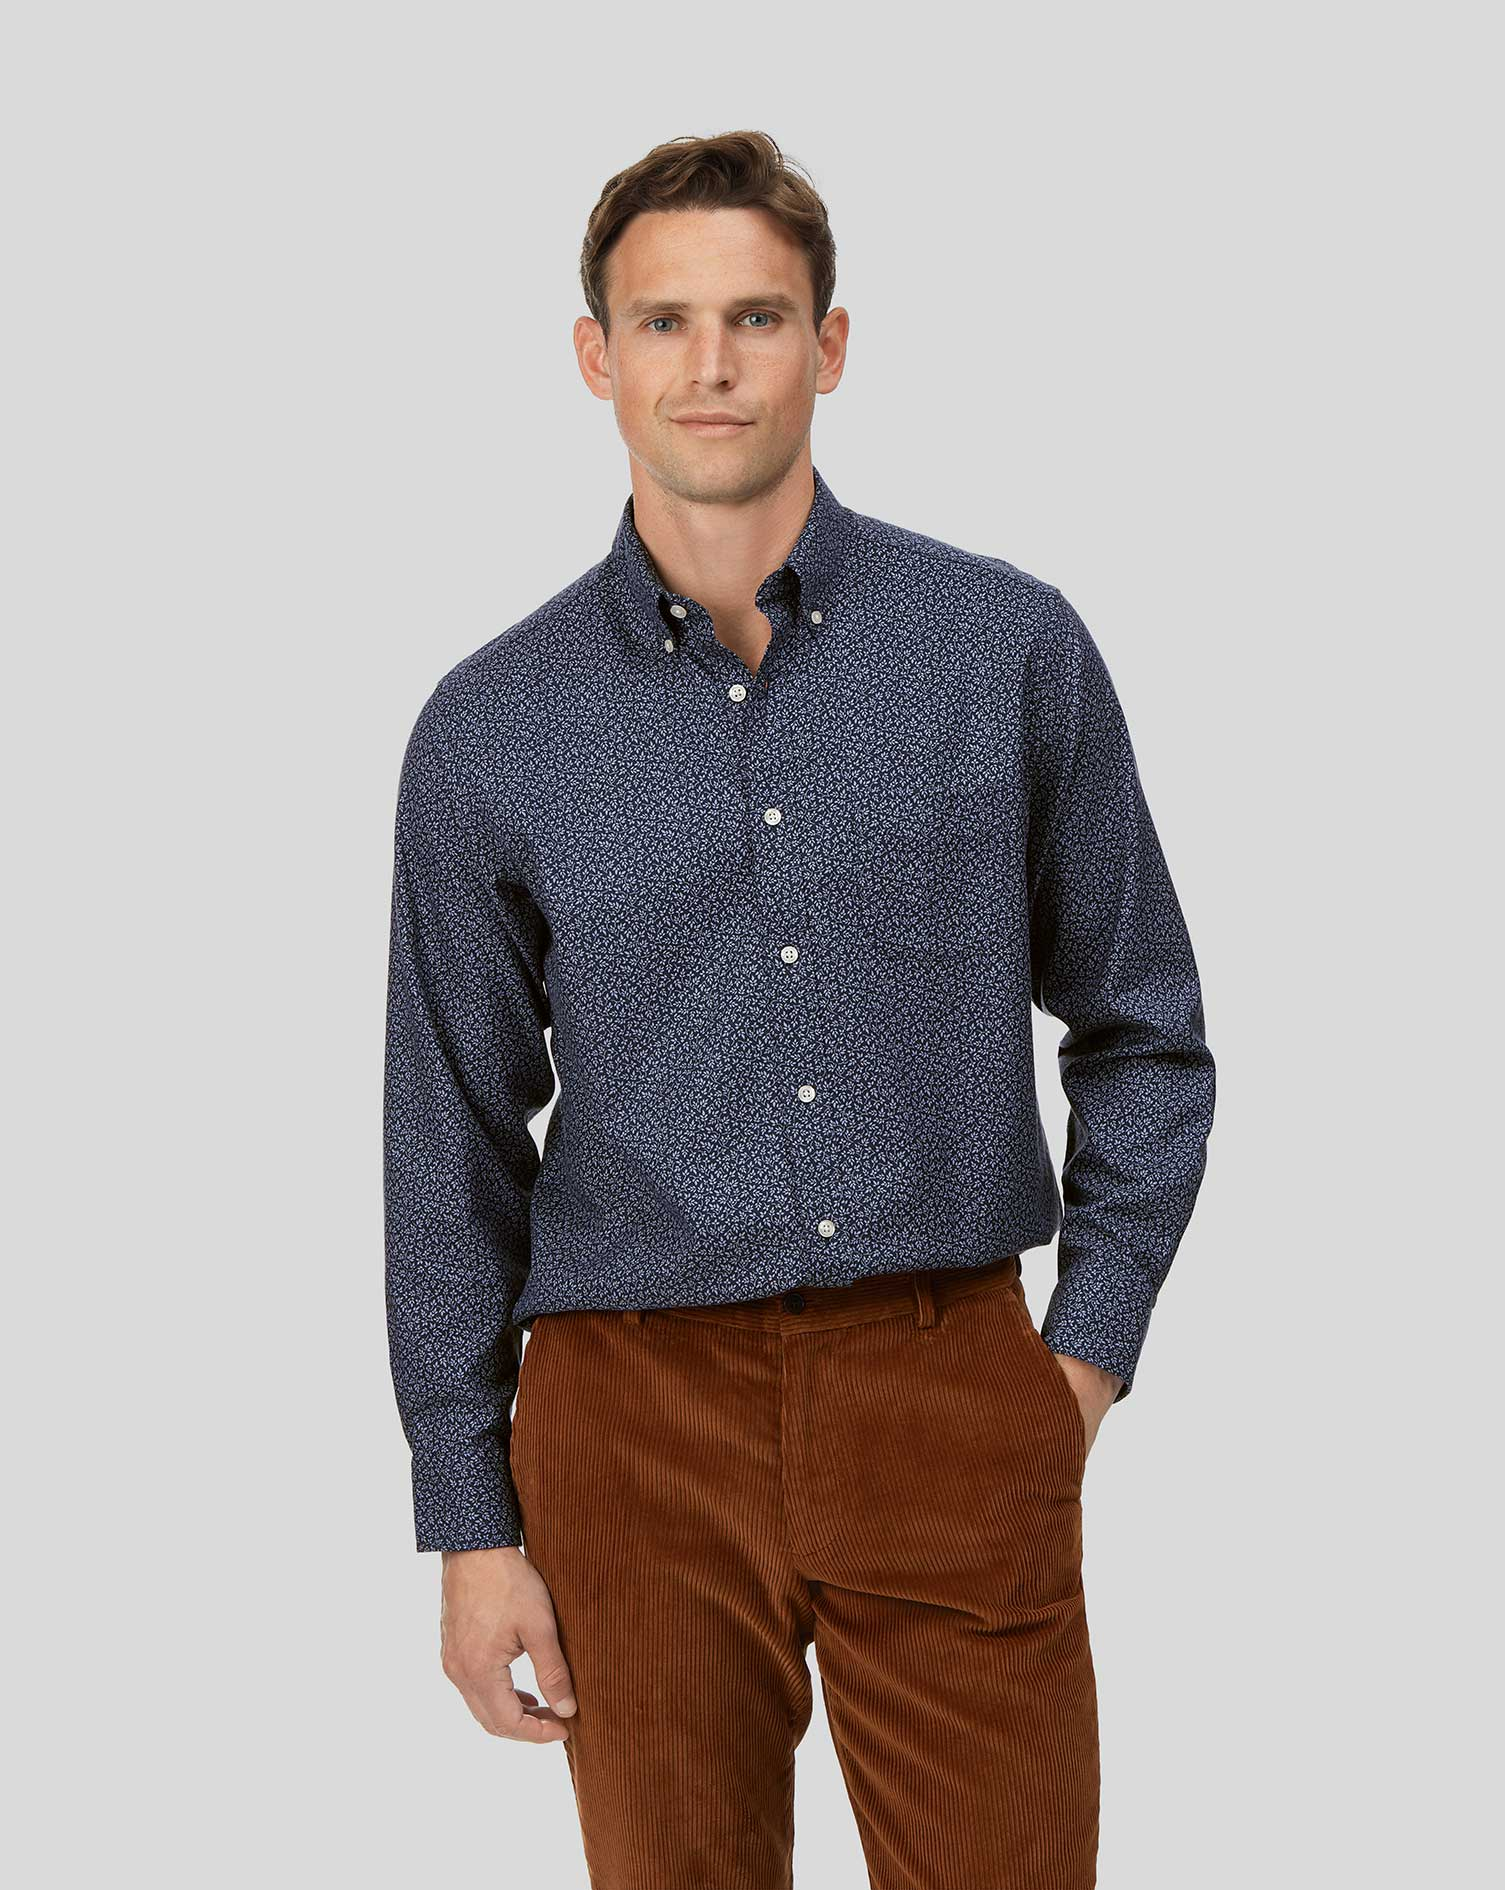 Cotton Classic Fit Soft Washed Non-Iron Twill Navy Leaf Print Shirt